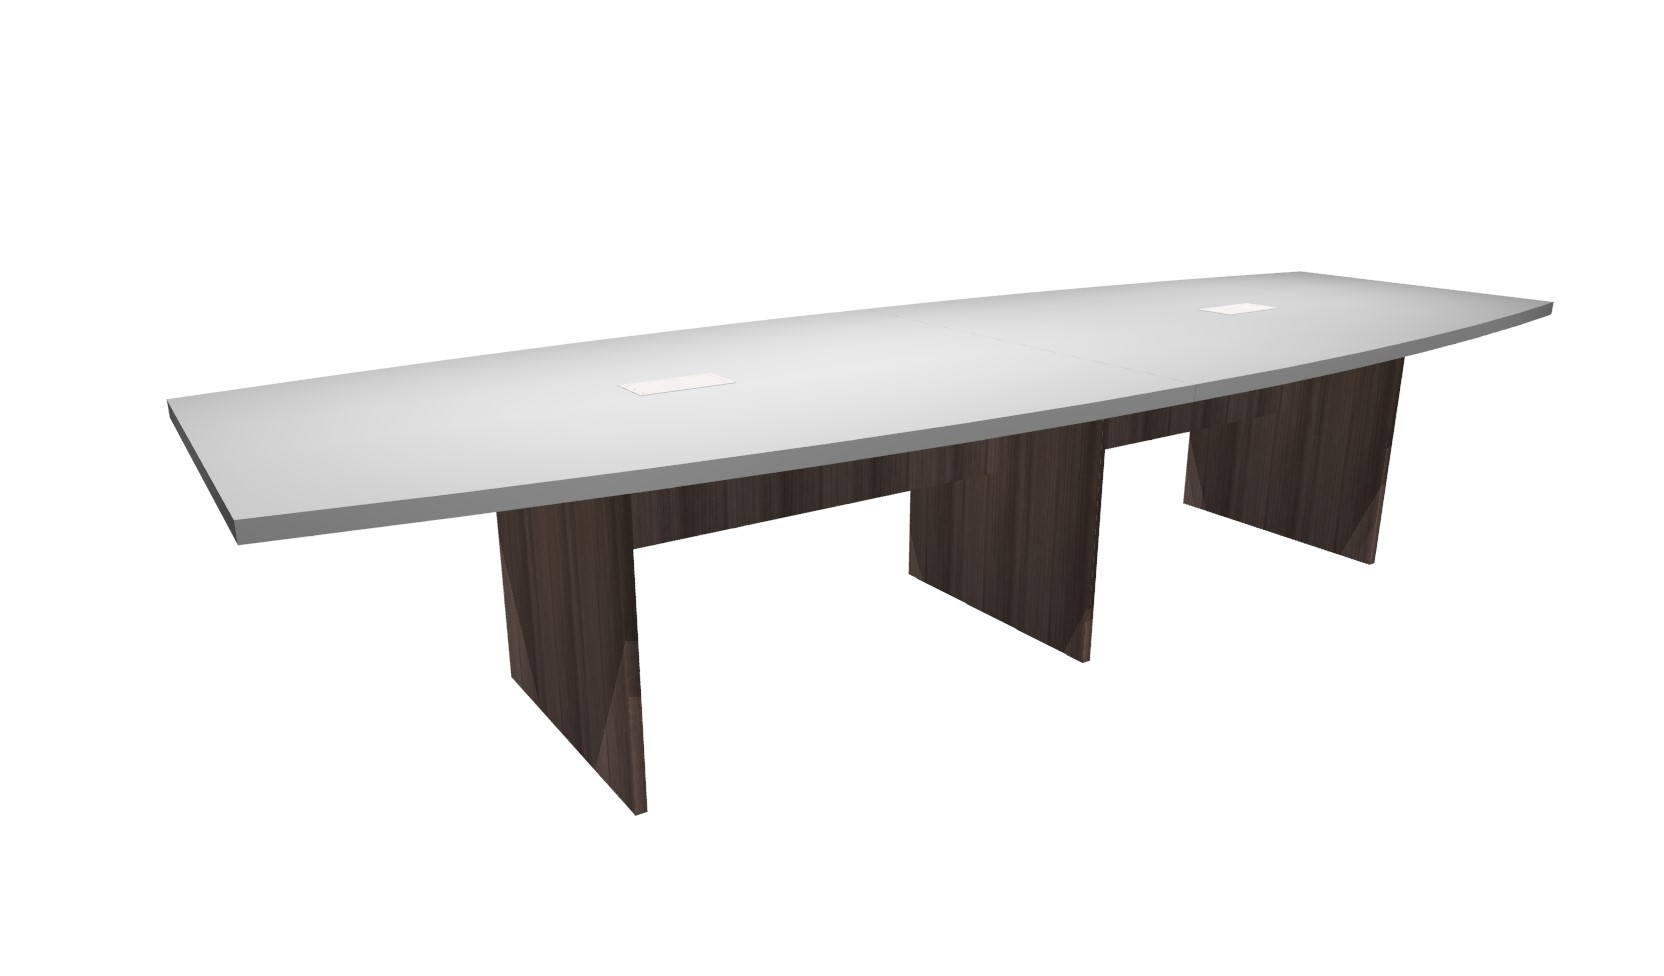 FT White Modern Walnut Boat Shaped Conference Table - 12 foot conference table